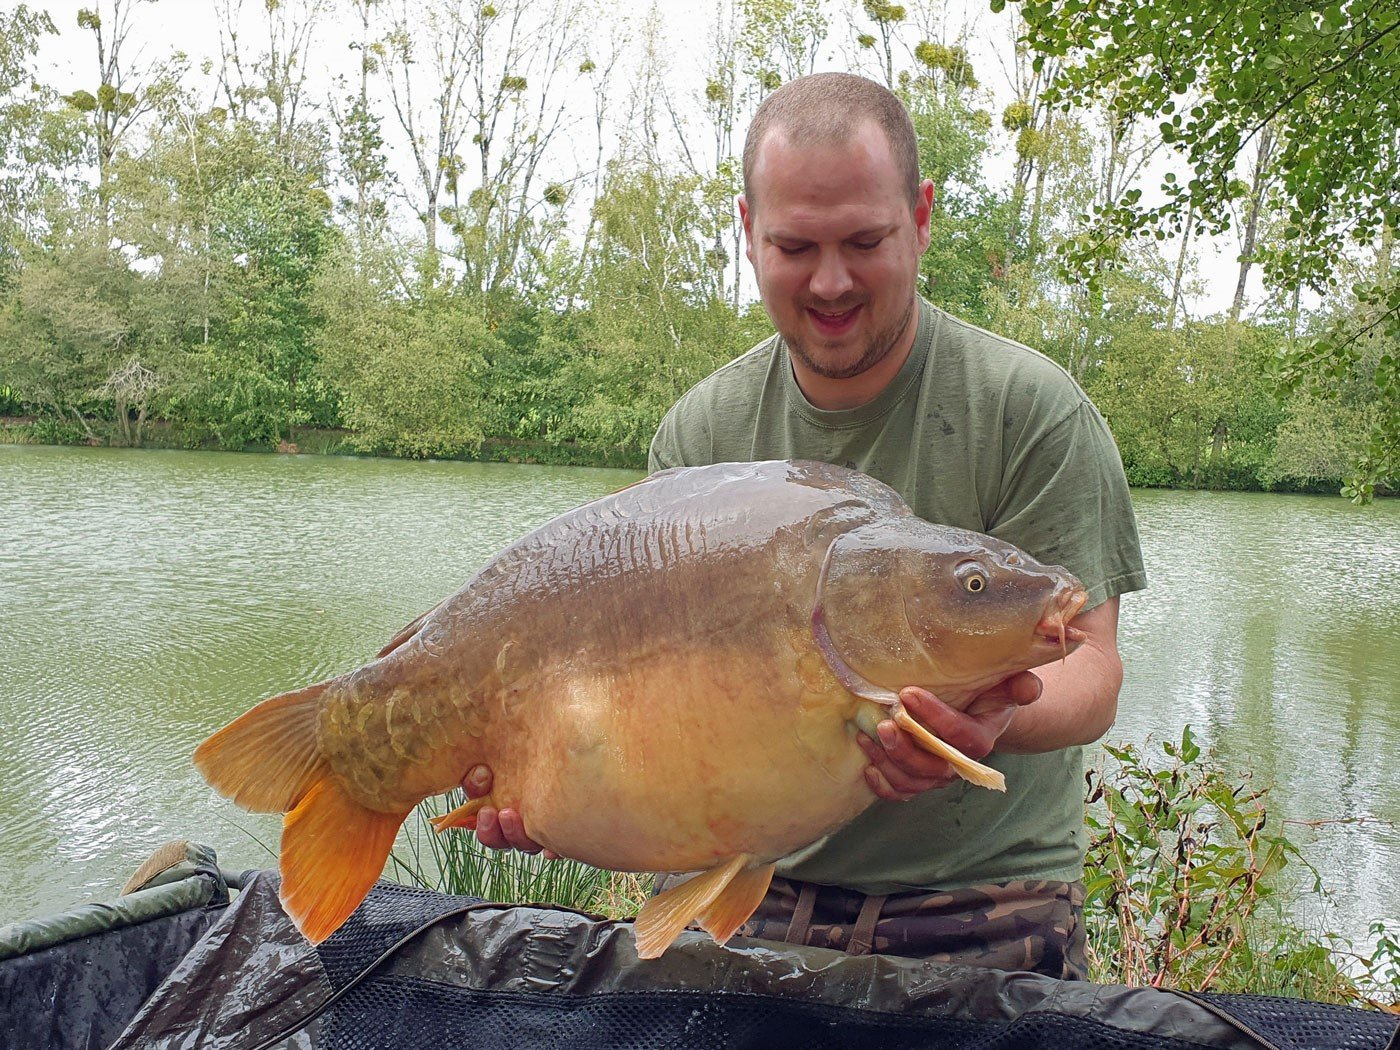 Andy with Gerrard a mirror carp of 38lbs 8oz